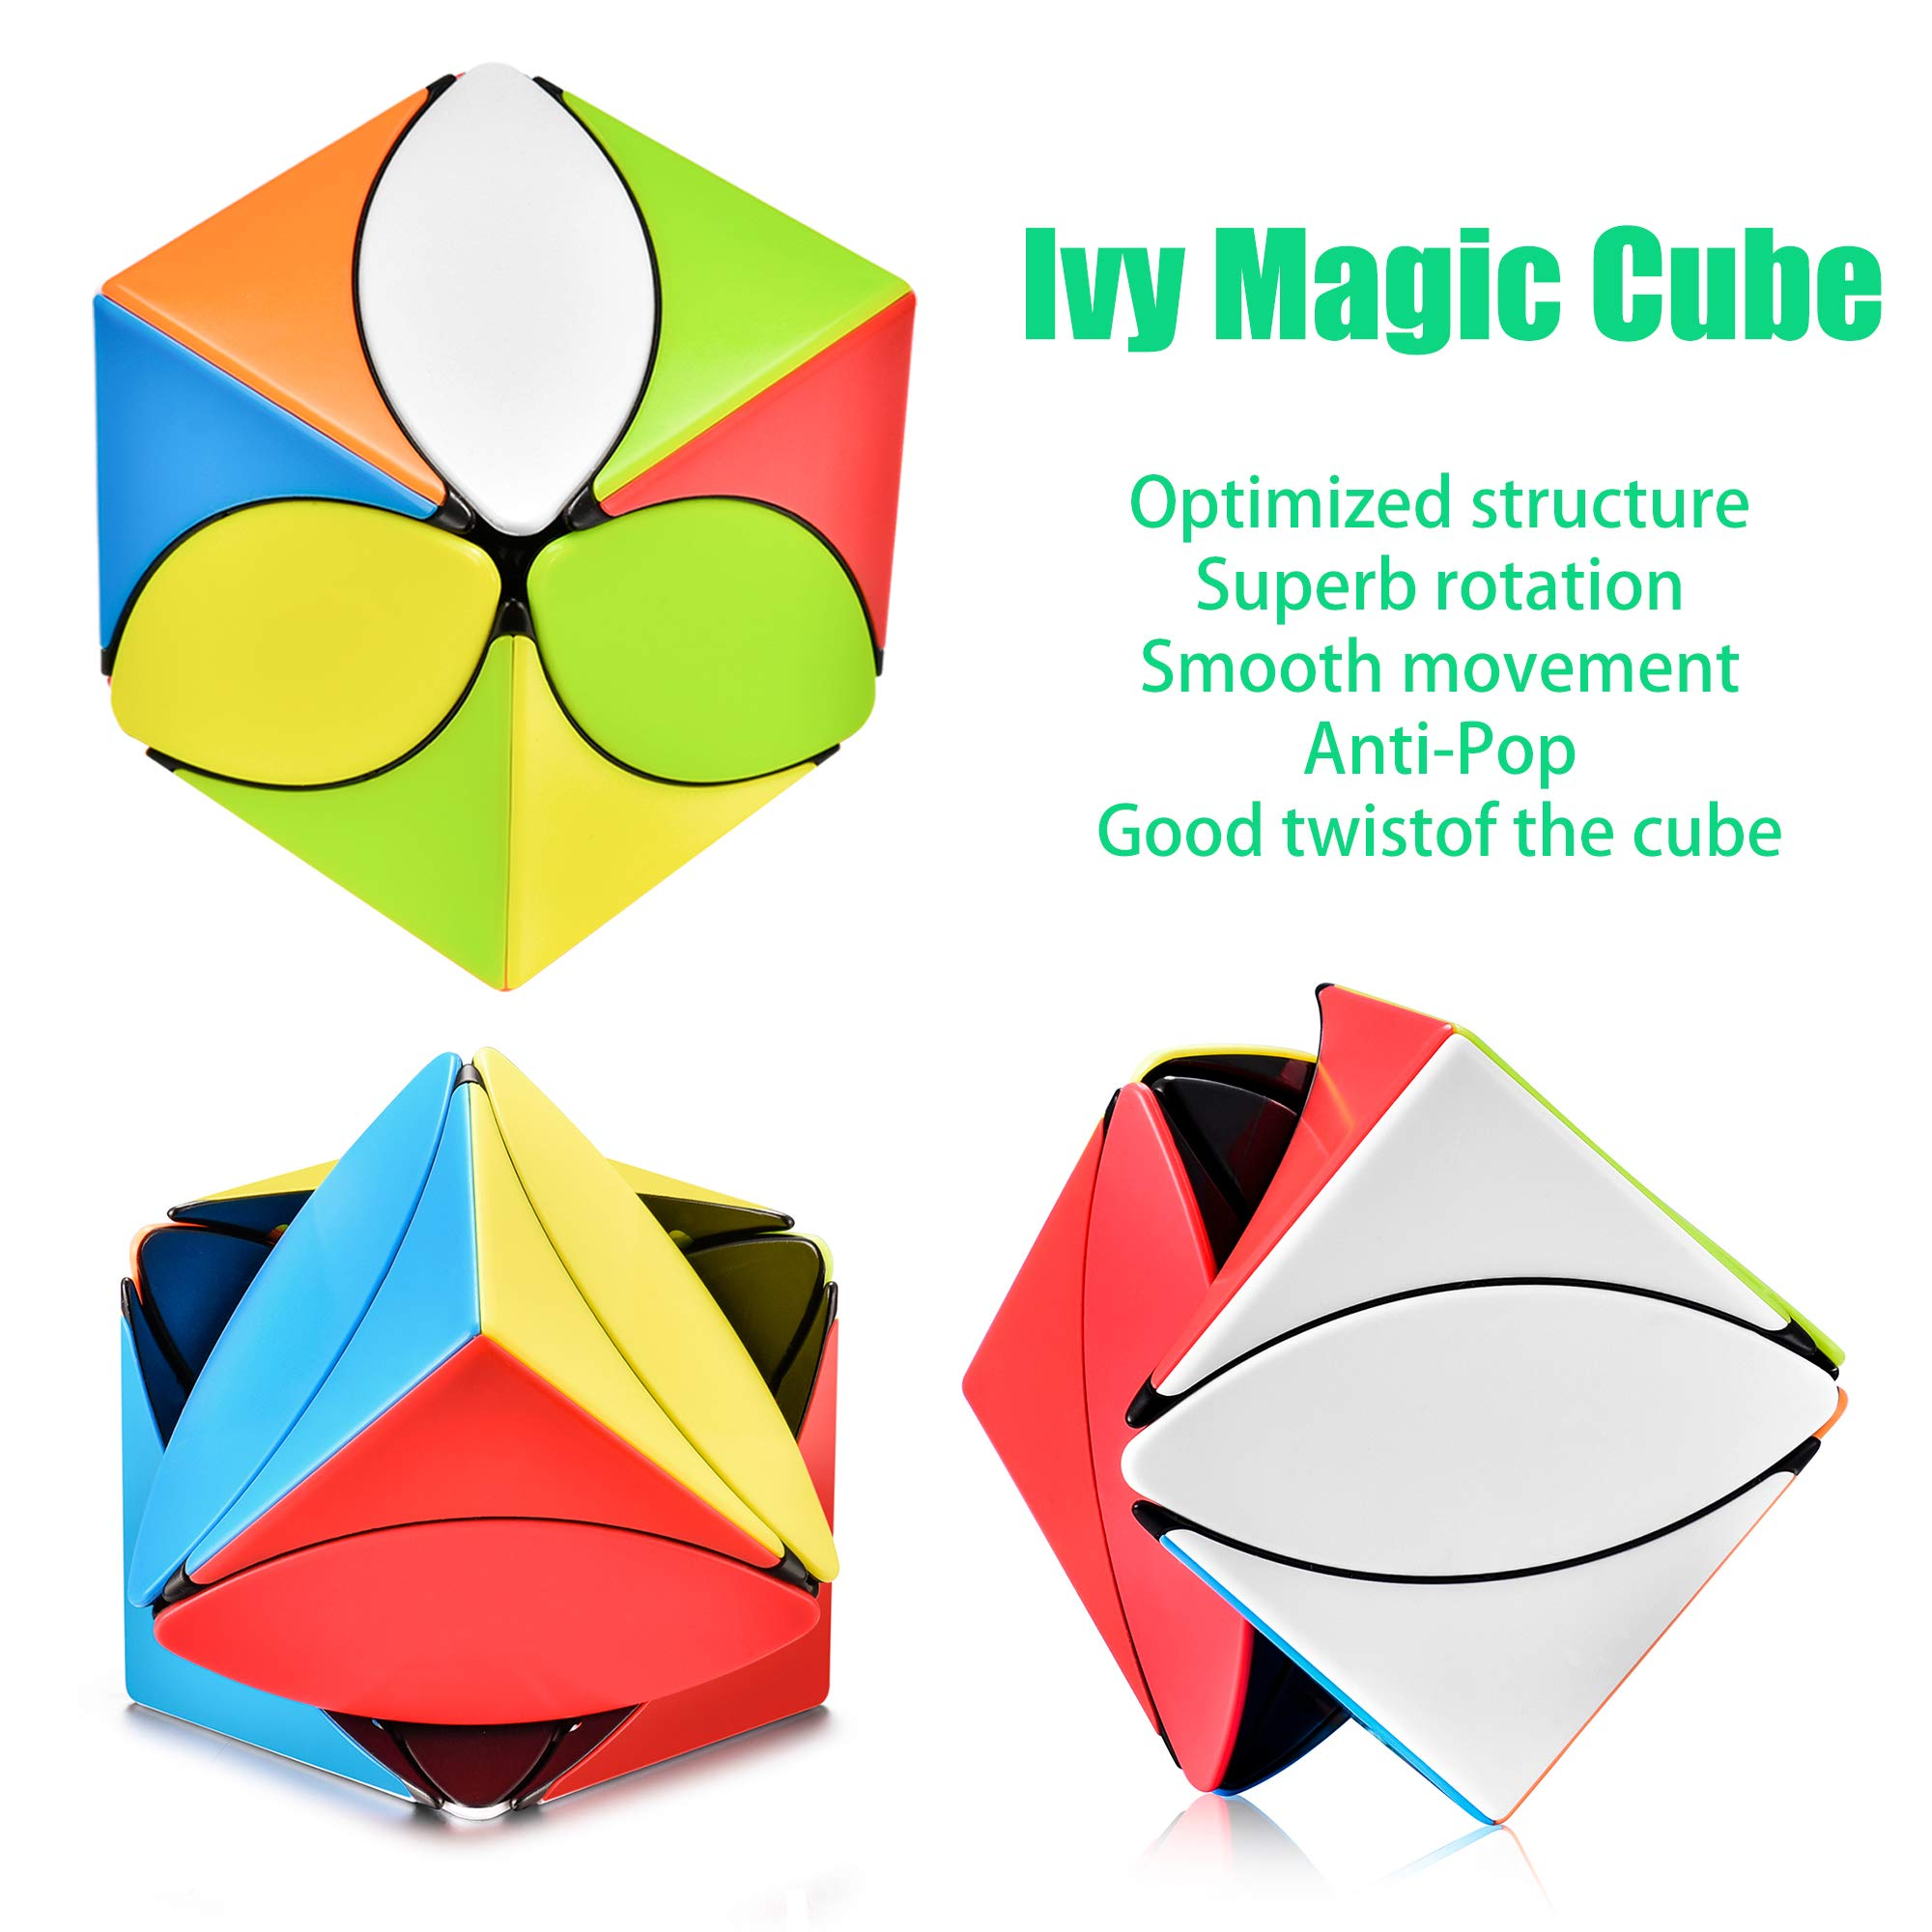 Magic Cube Set - 3x3 Skewb Penrose Cube Puzzle, Ivy Cube, Cylinder Speed Cube - Stickerless Bundle Toys Gifts for Kids